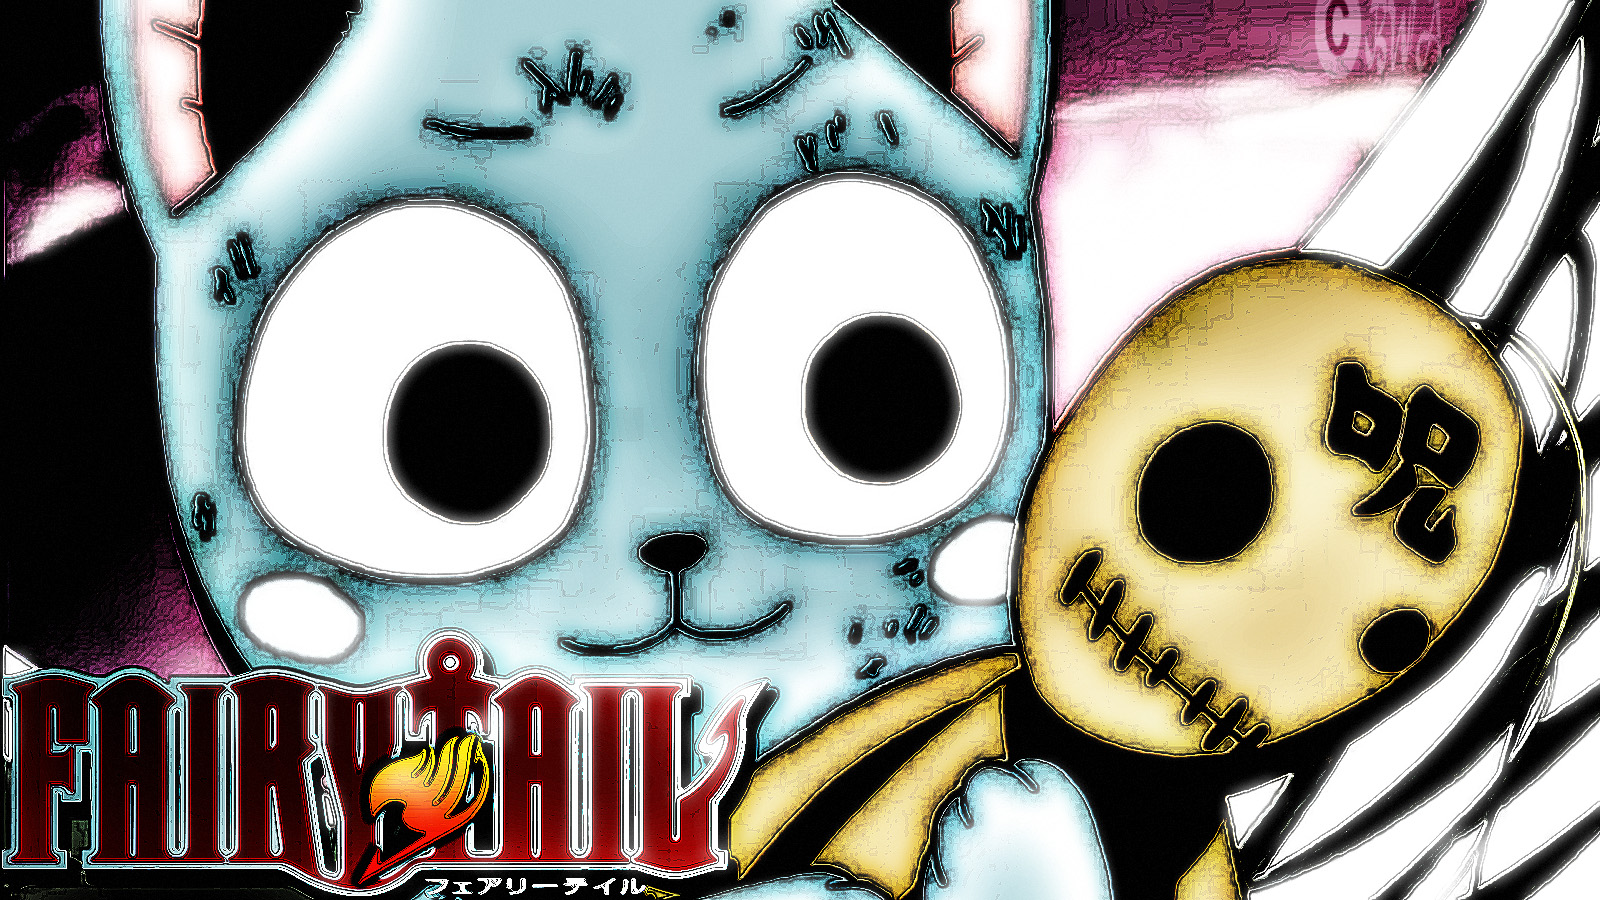 http://1.bp.blogspot.com/-GyKBaVGhpj0/TuWtawZC6sI/AAAAAAAABAc/MwXVJctN7XU/s1600/Happy_Fairy_Tail_by_banditajj4_wallpaper_art.jpg